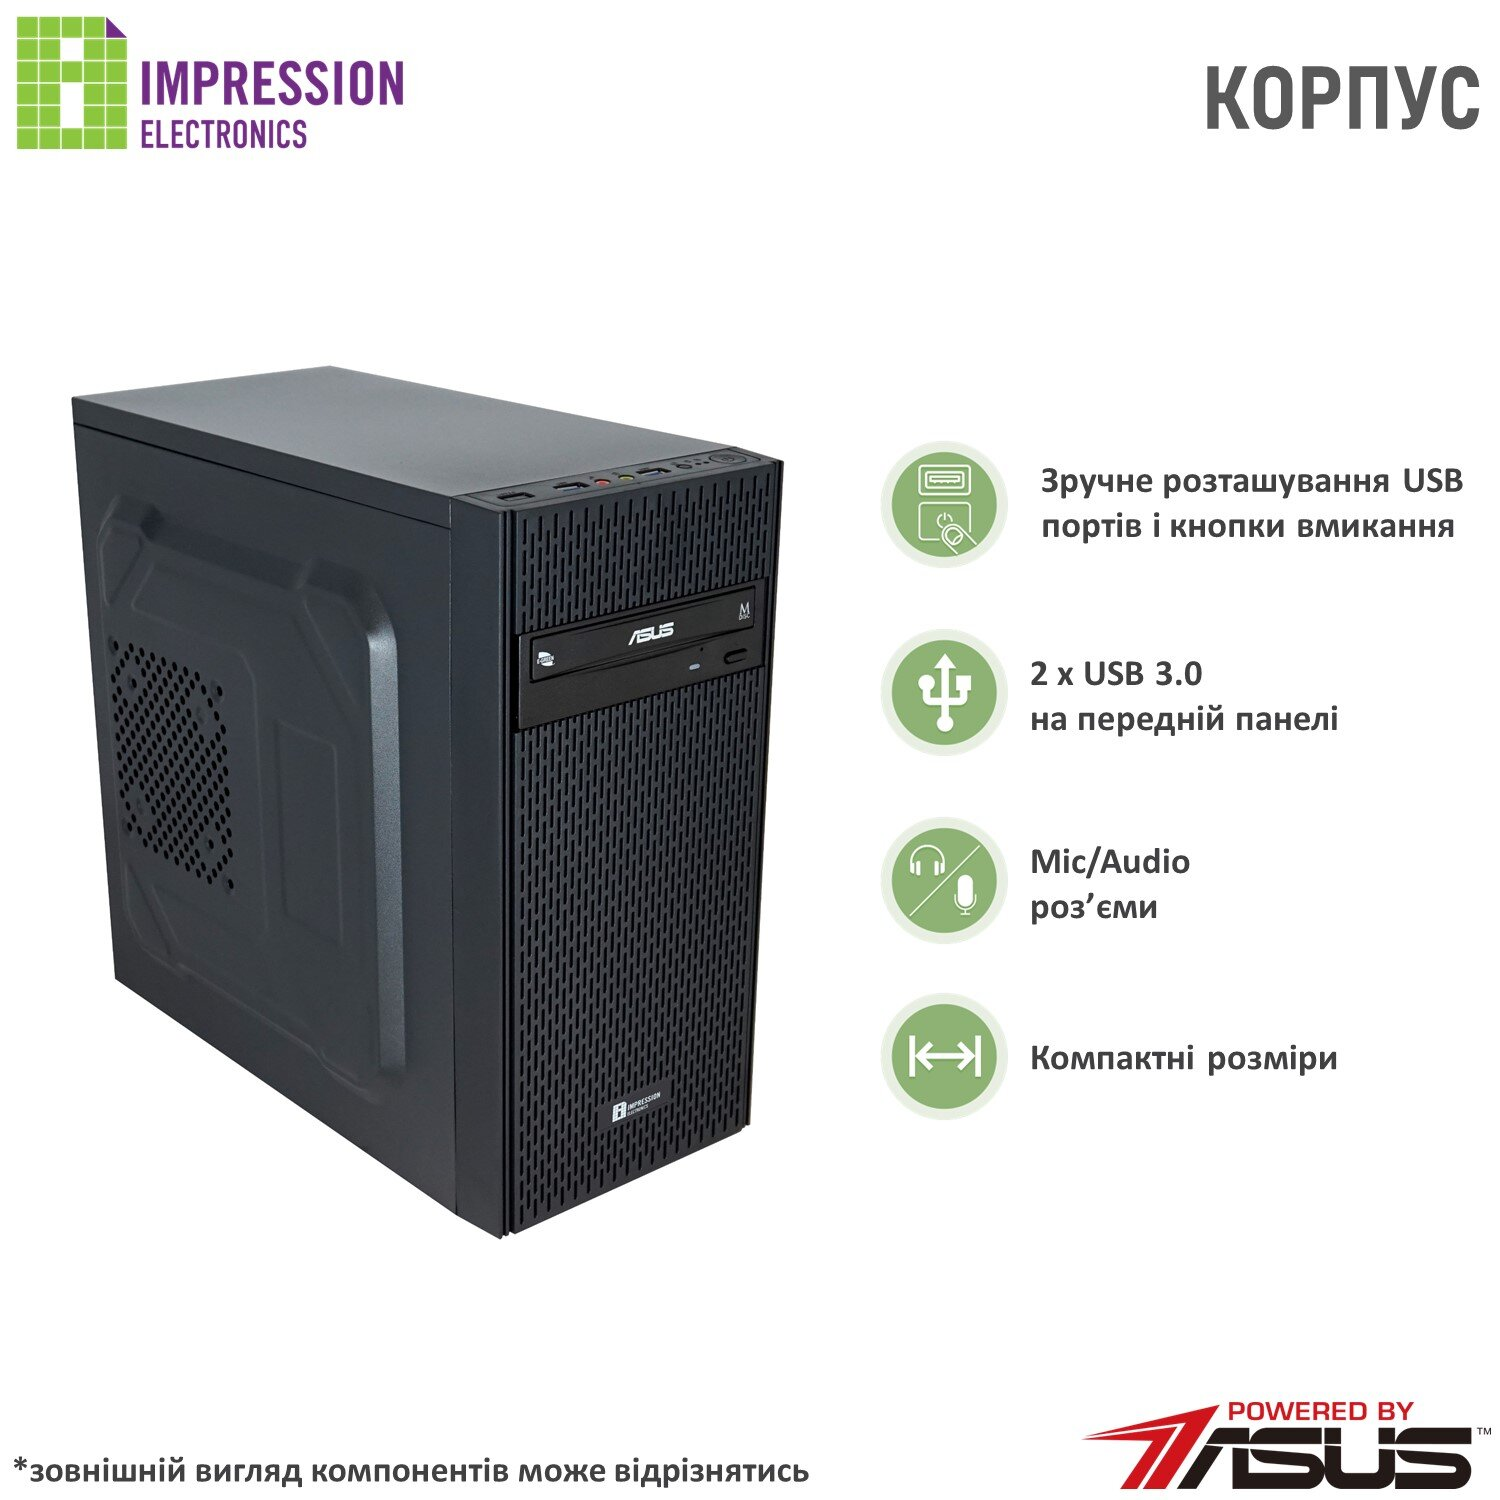 Компьютер Impression Business A0017